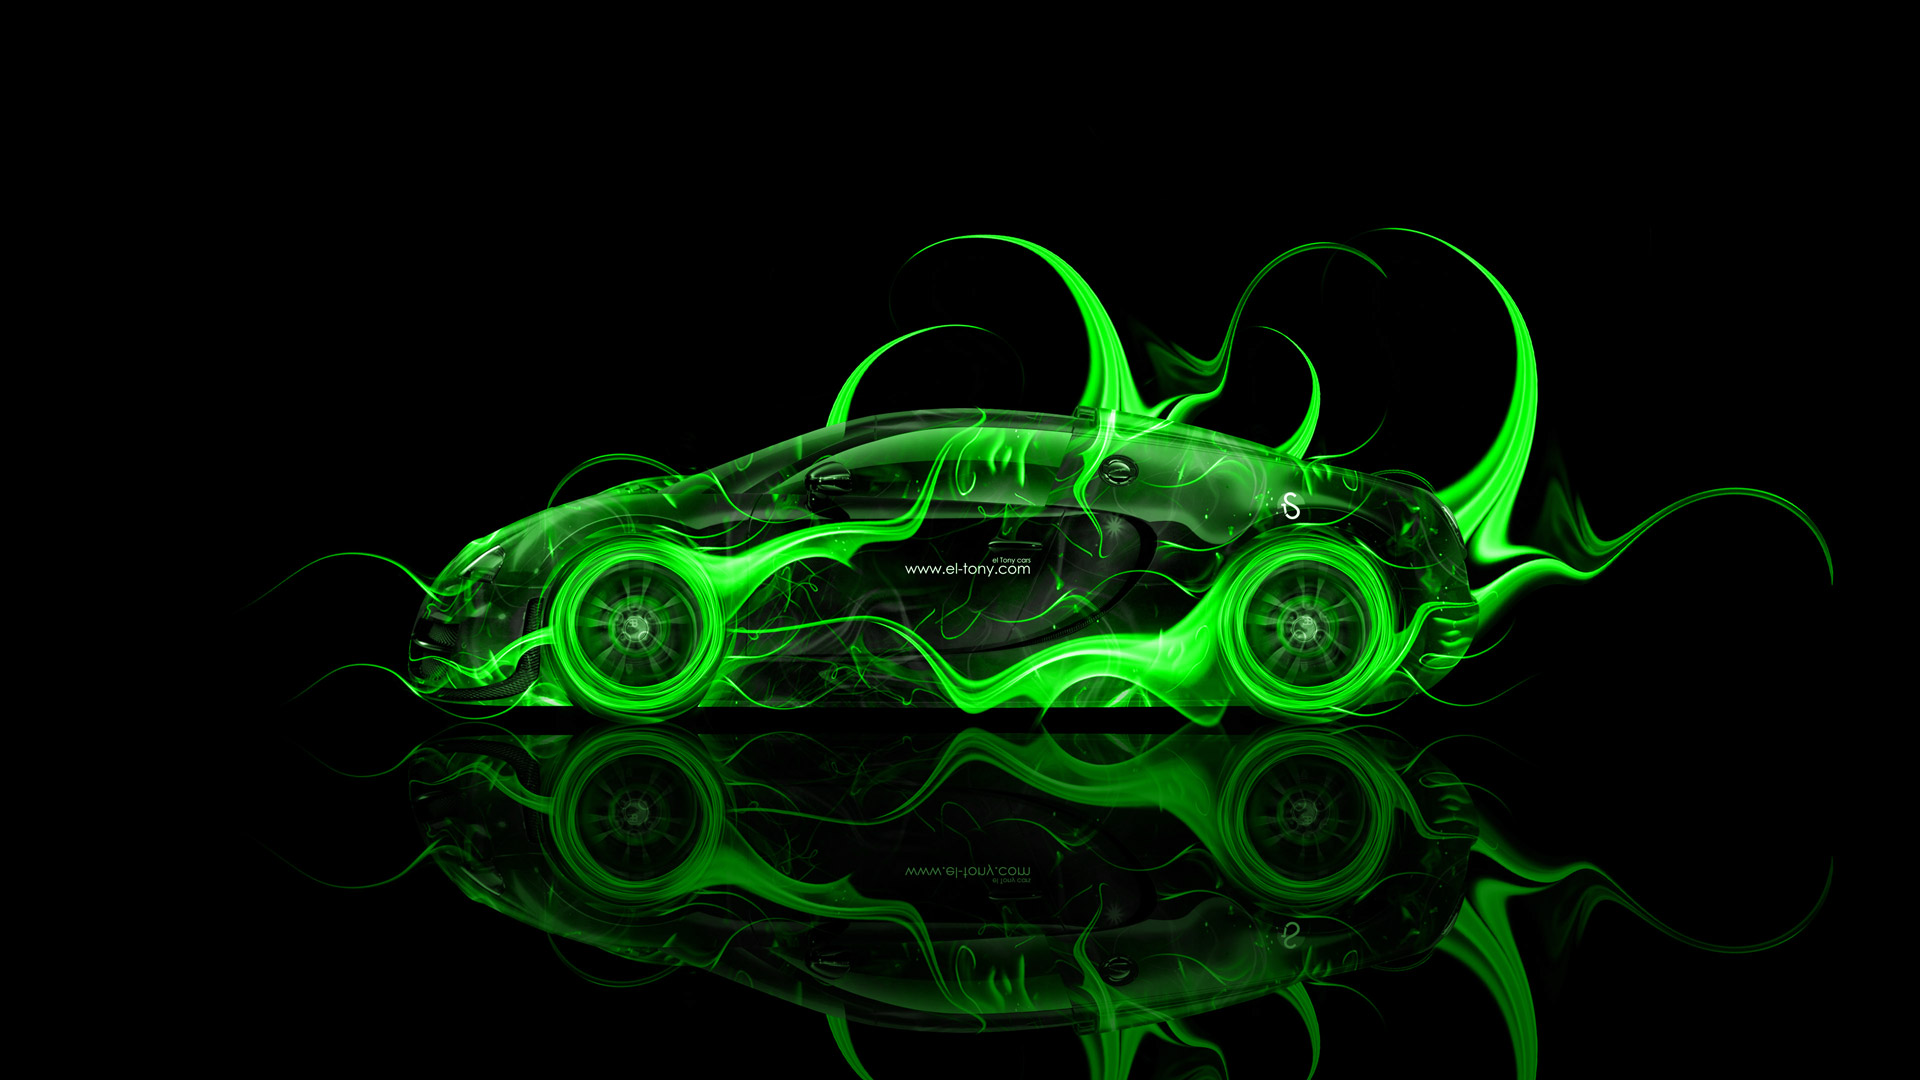 Bugatti Veyron Side Fire Abstract Car 2014 El Tony 1920x1080